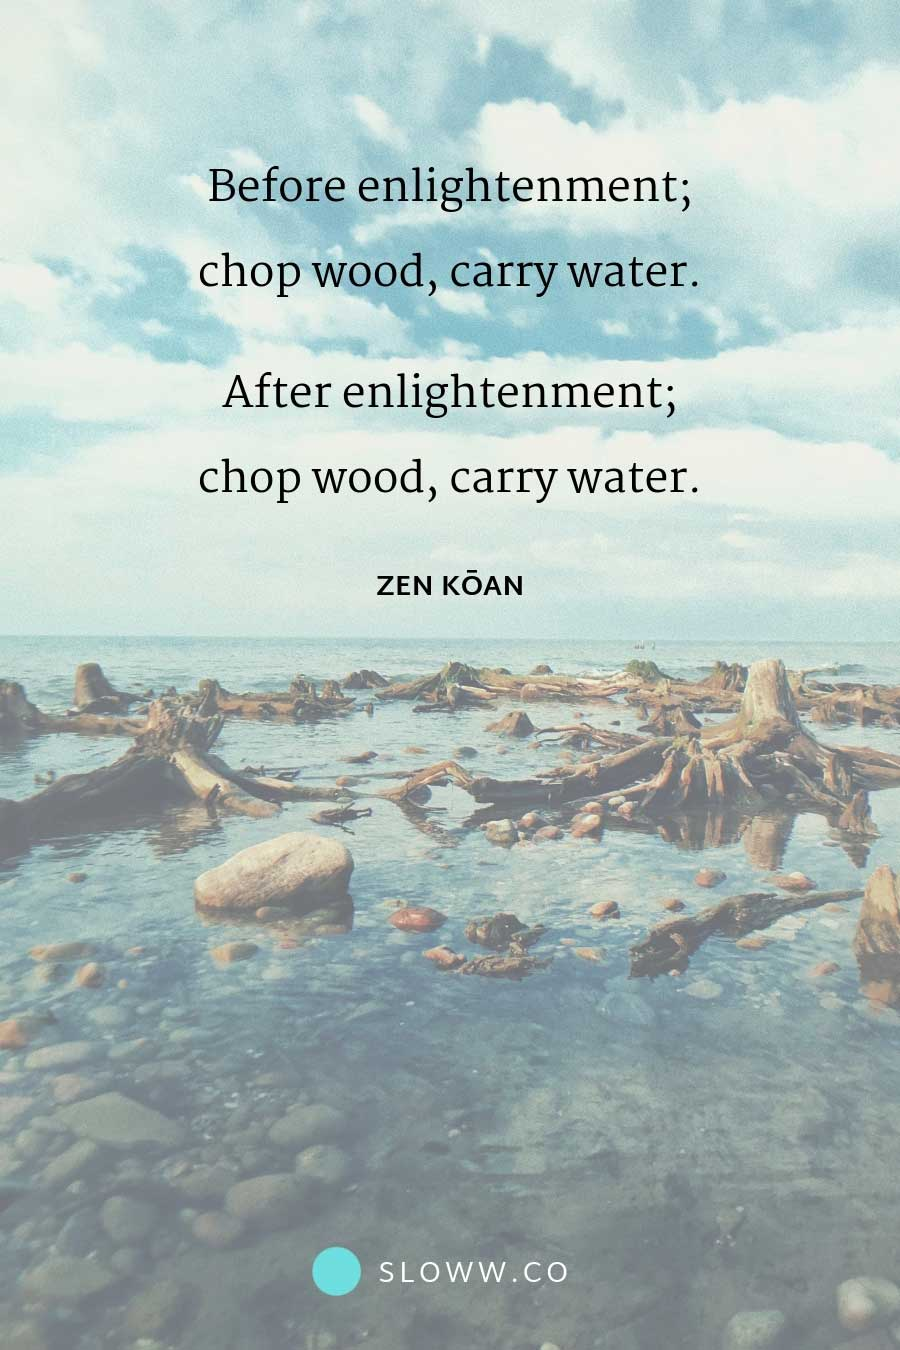 Enlightenment: 3 Meanings of Chop Wood, Carry Water | Sloww